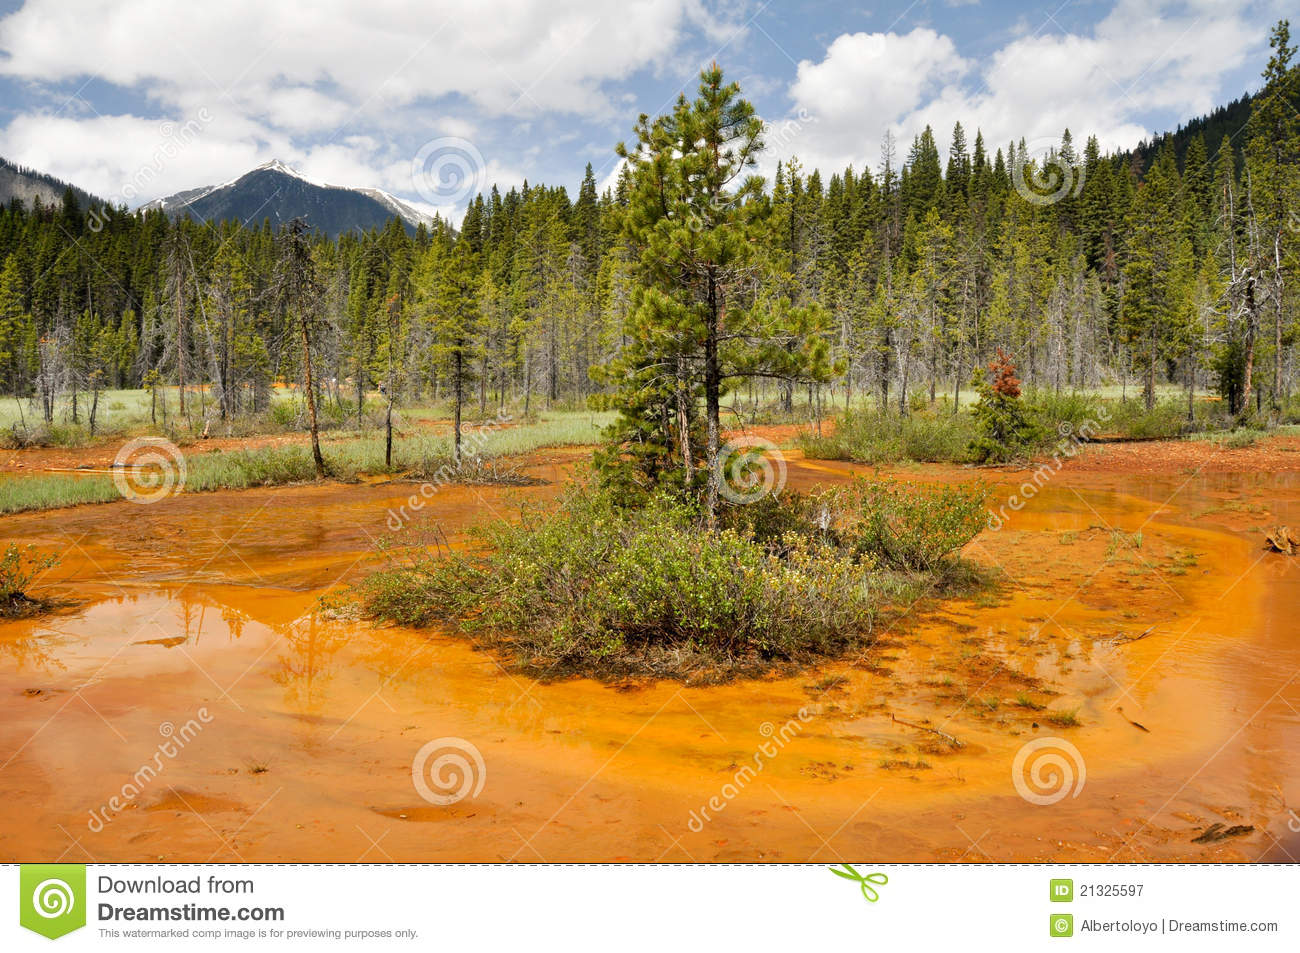 Paint pots in kootenay national park canada stock image image paint pots in kootenay national park canada sciox Image collections